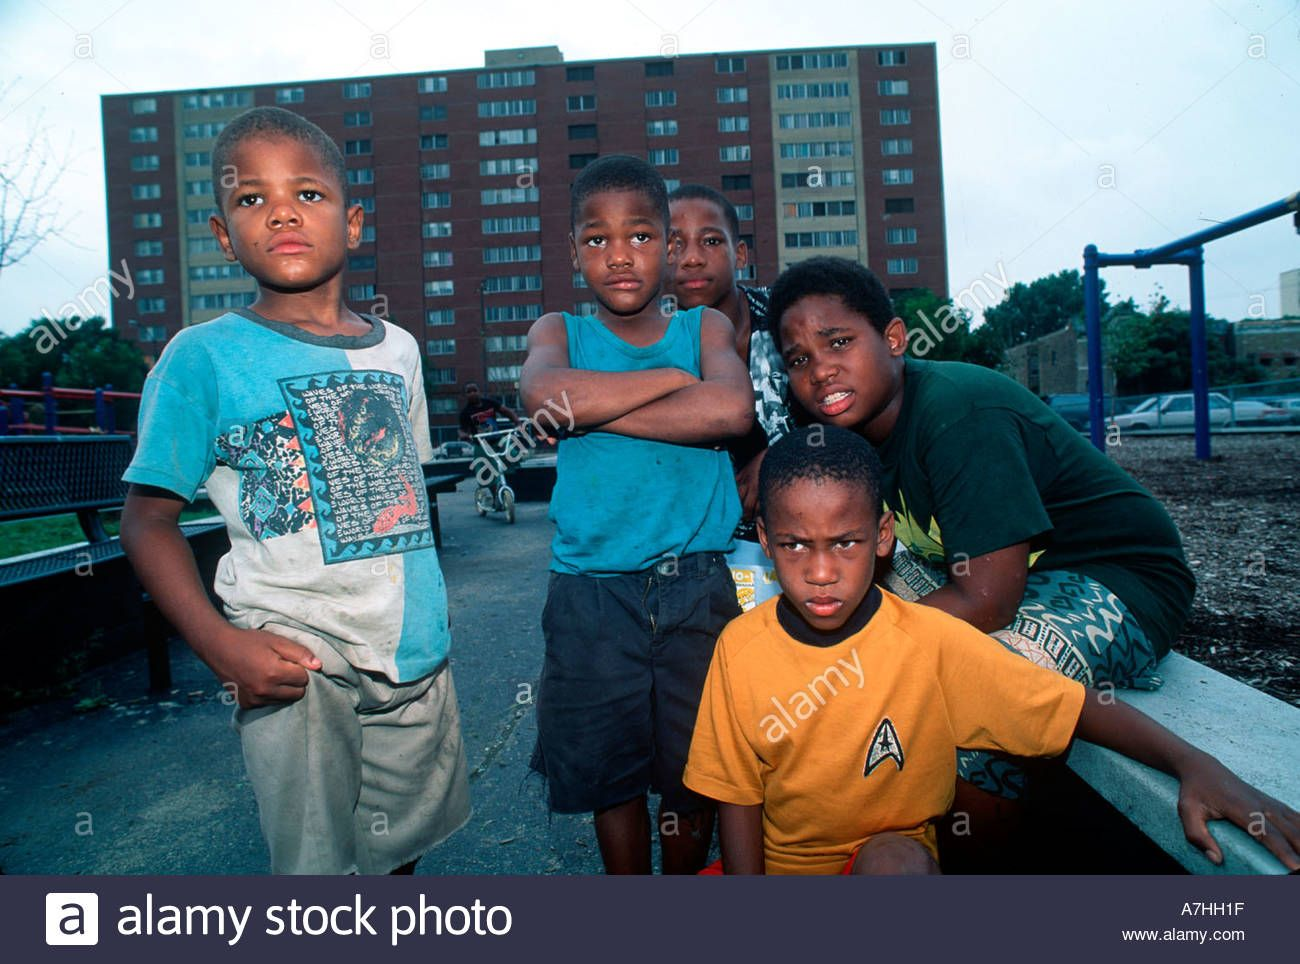 Download This Stock Image Children In Notorious Public Housing Project Of Rockwell Gardens A7hh1f From Alamy S Libra Chicago Pictures Rockwell Stock Photos